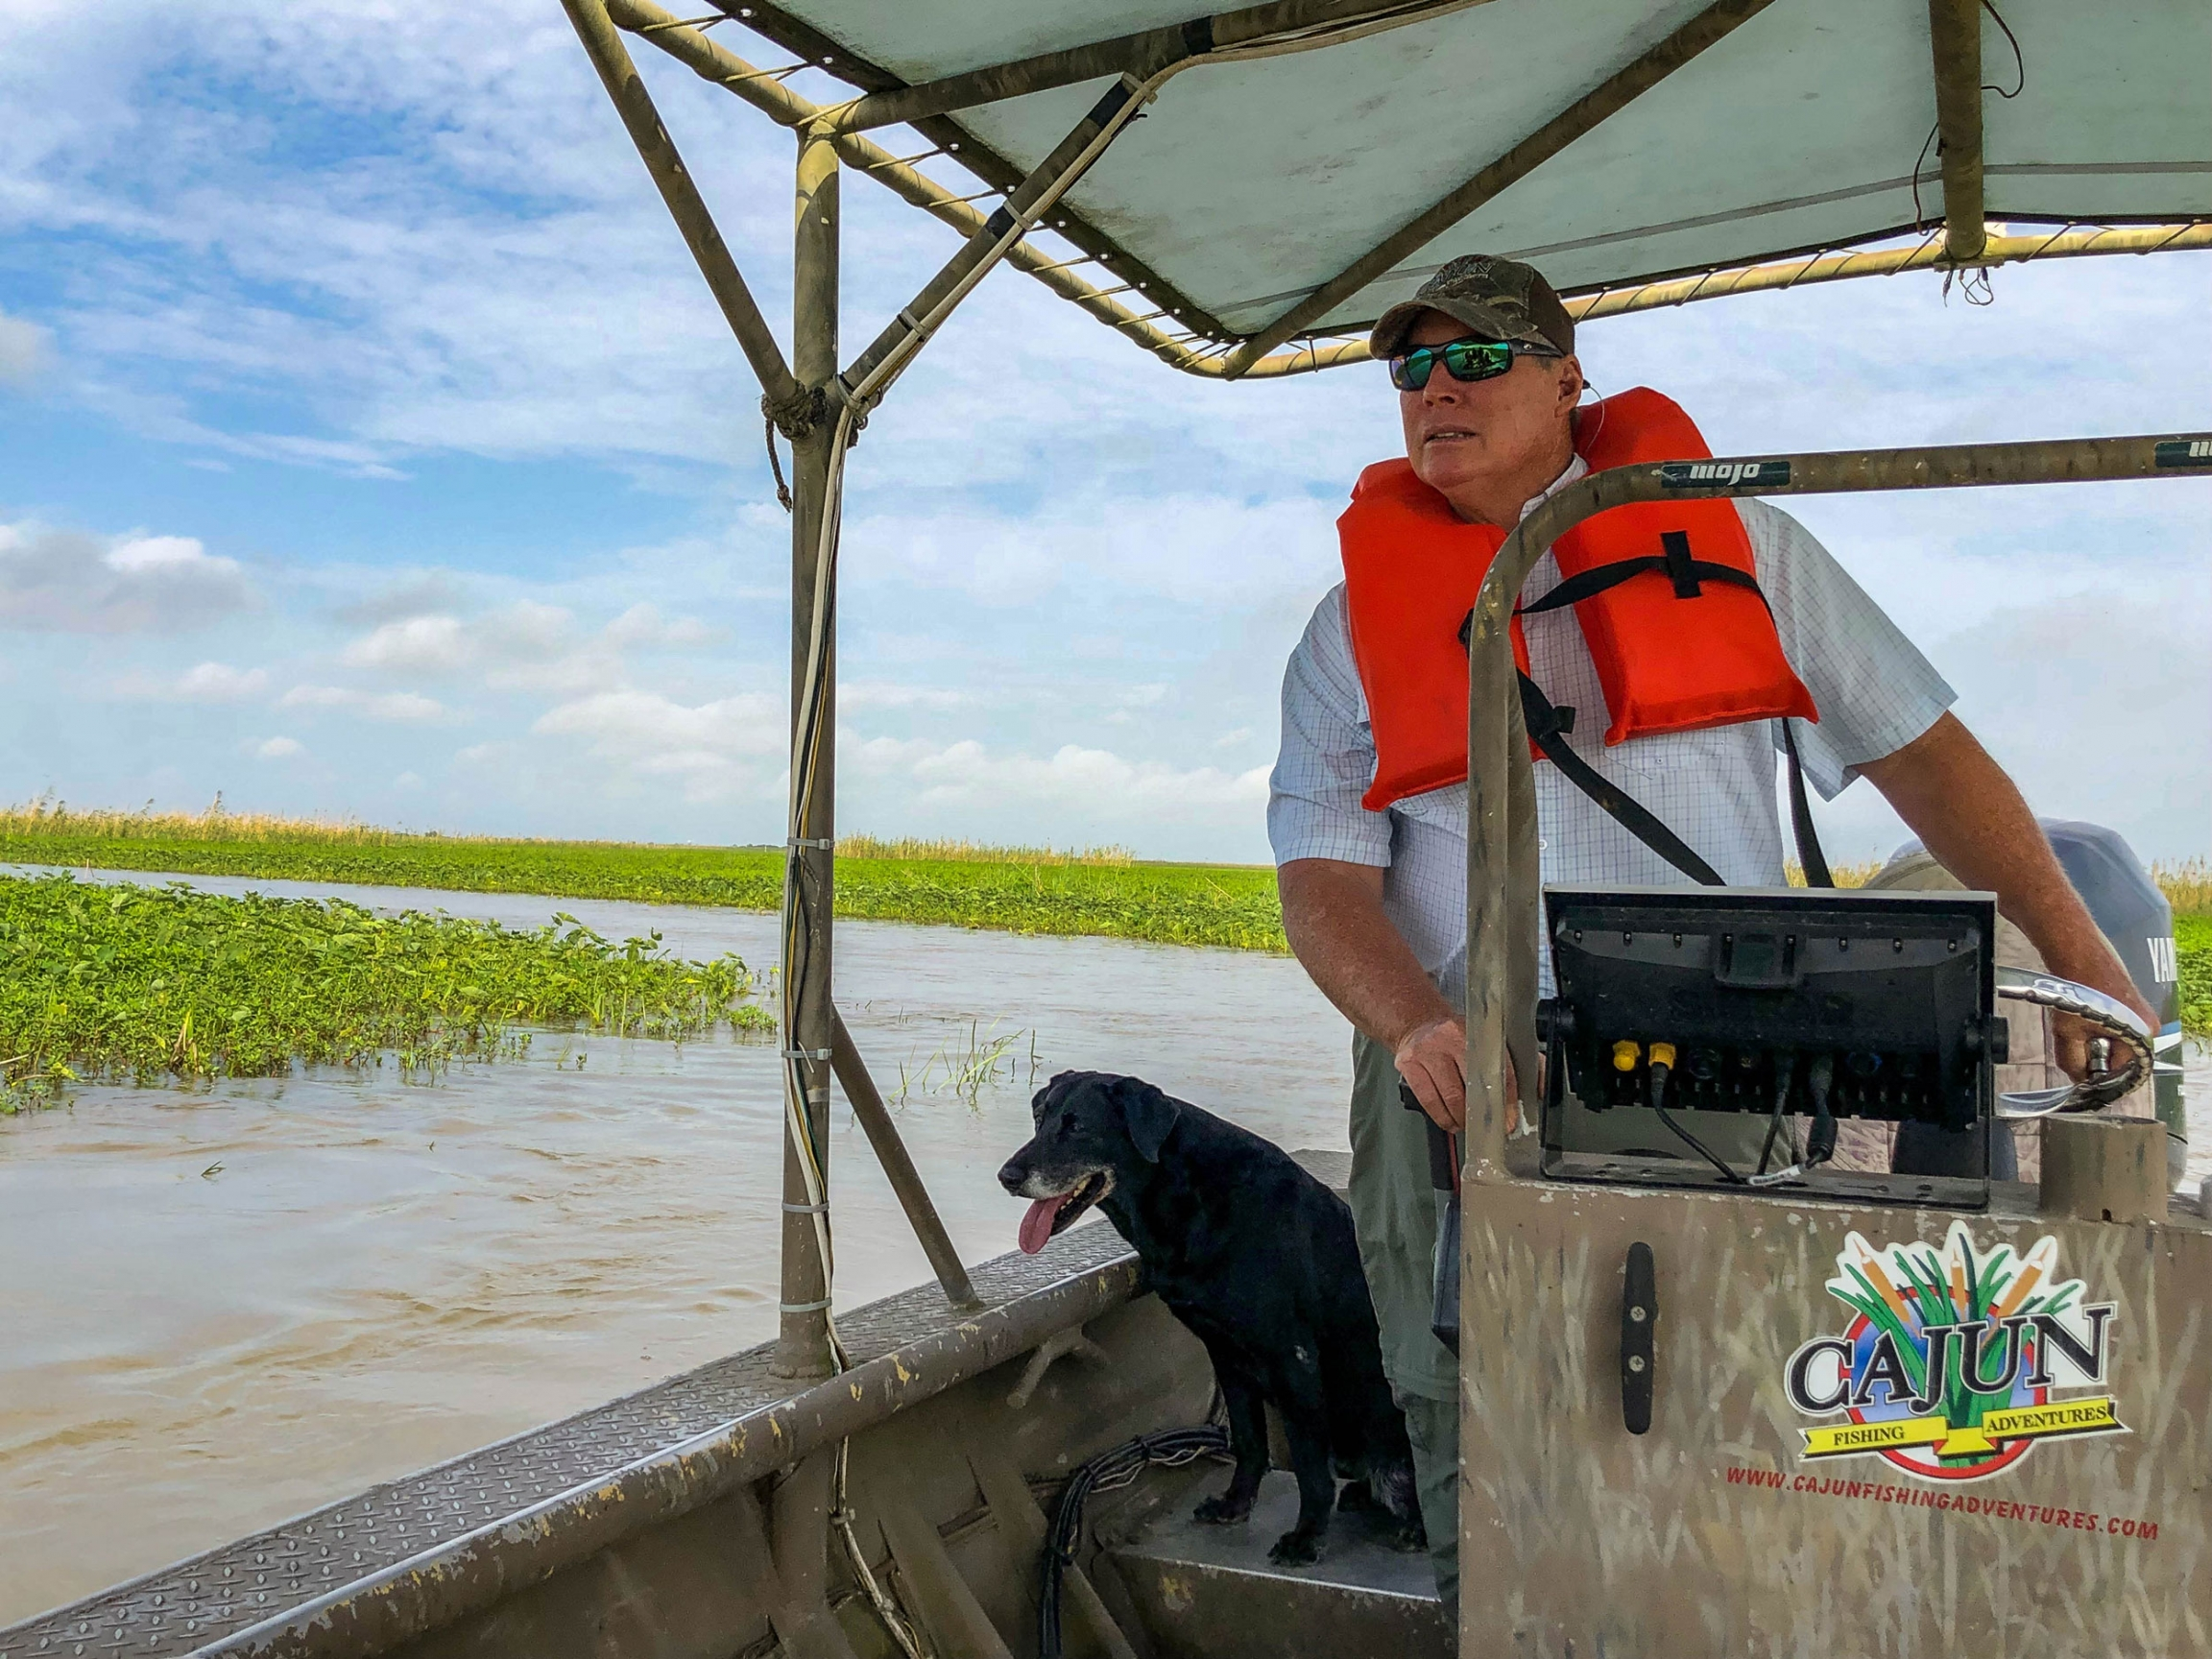 Ryan Lambert is shown piloting a flat bottom boat with a dark colored dog sitting next to him.